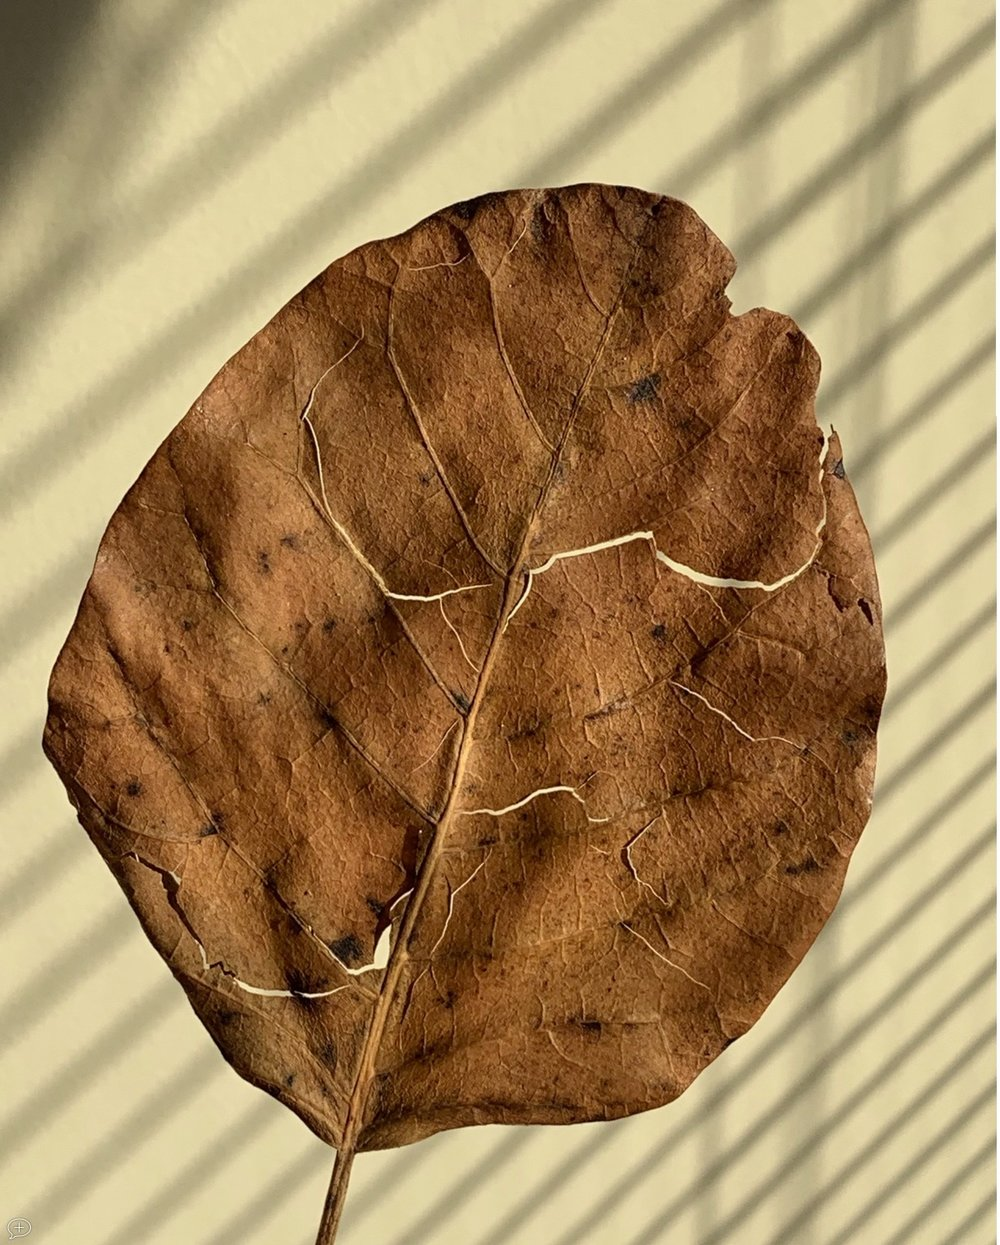 """4 . A Winter Leaf . iPhone XS, 2018. Saratoga Springs, NY.(Canvas Photo, 20"""" x 16""""). I'm particularly fond of photographing nature up close, and this leaf blew into my garage last November, so I held it up against a wall, with the shadow of a shade behind it.  ©2018 Sean Walmsley"""